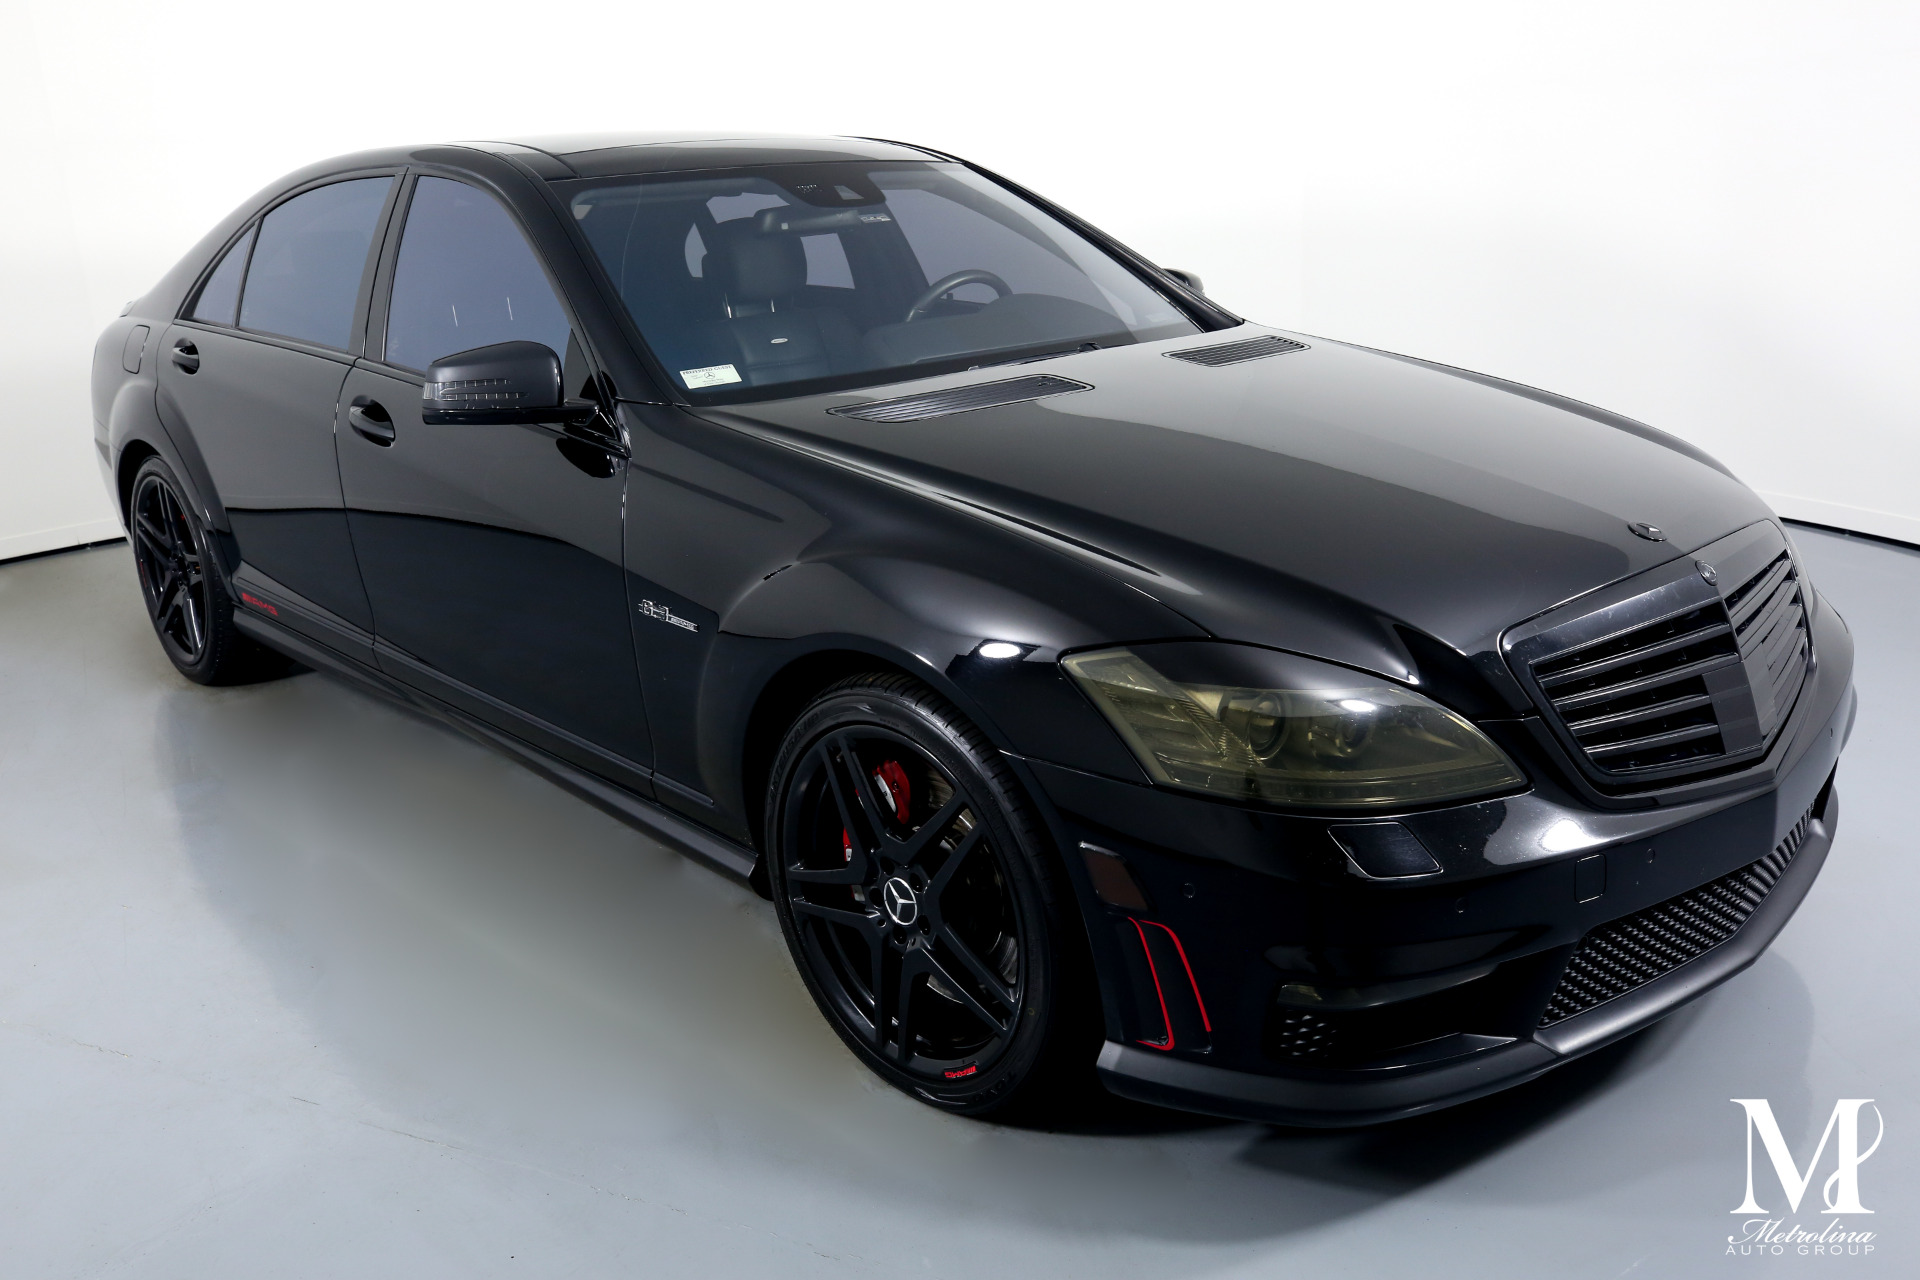 Used 2010 Mercedes-Benz S-Class S 63 AMG for sale $34,996 at Metrolina Auto Group in Charlotte NC 28217 - 2